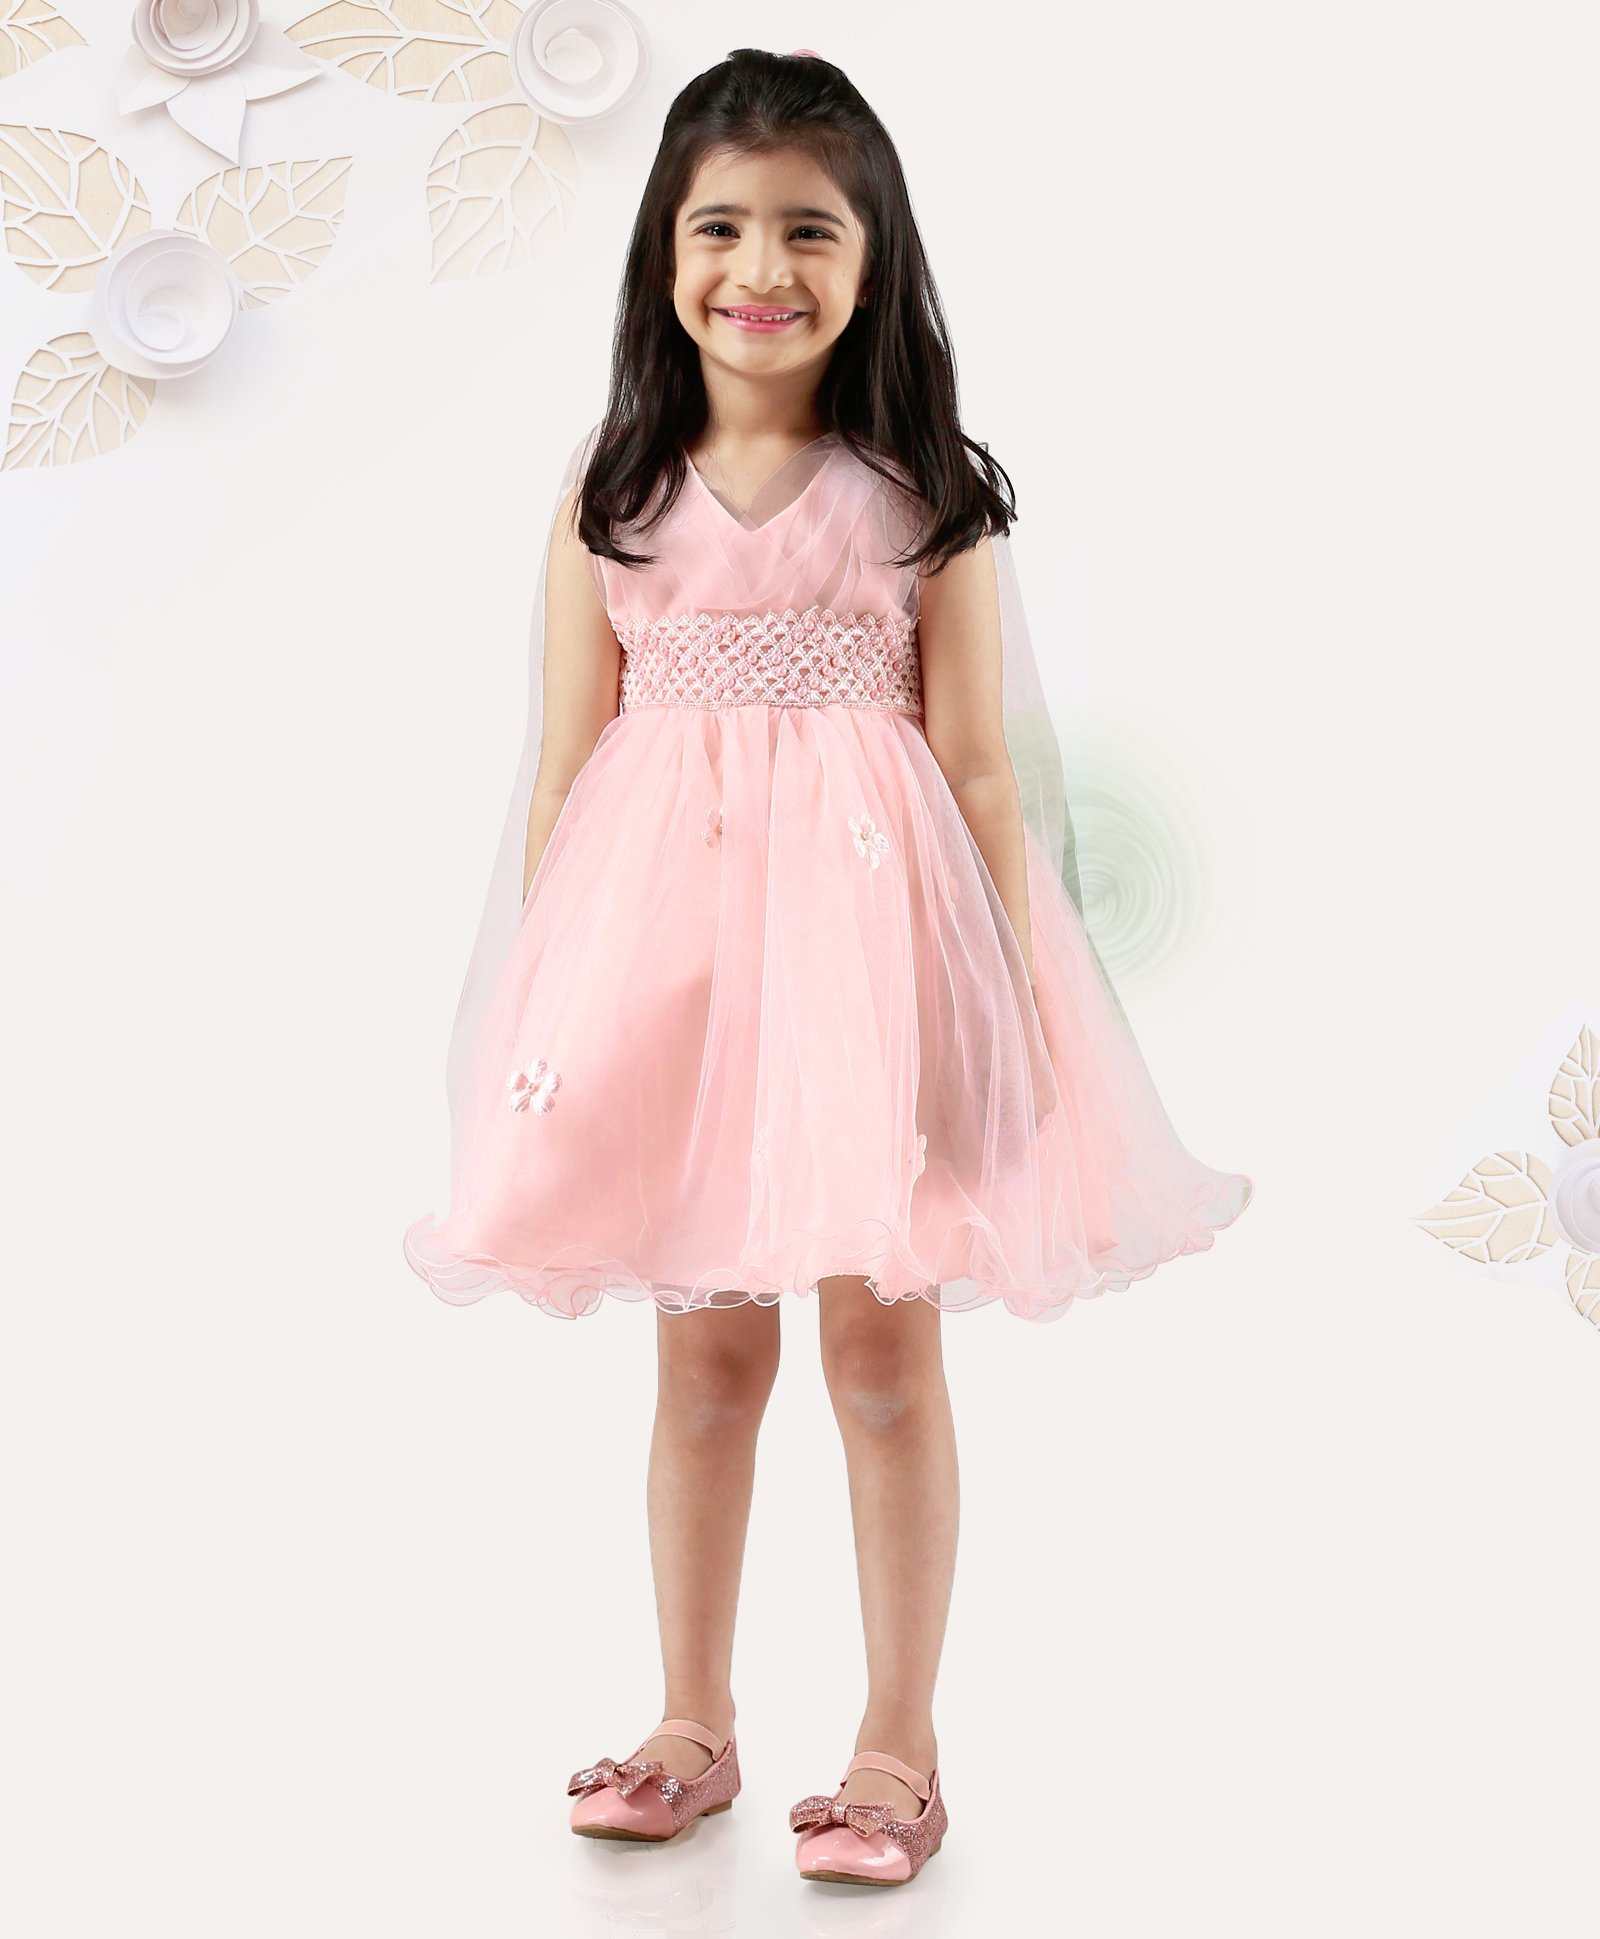 54736804c0004 Buy Mark & Mia Sleeveless Frock With Flower Applique Peach for Girls (18-24  Months) Online in India, Shop at FirstCry.com - 2445128